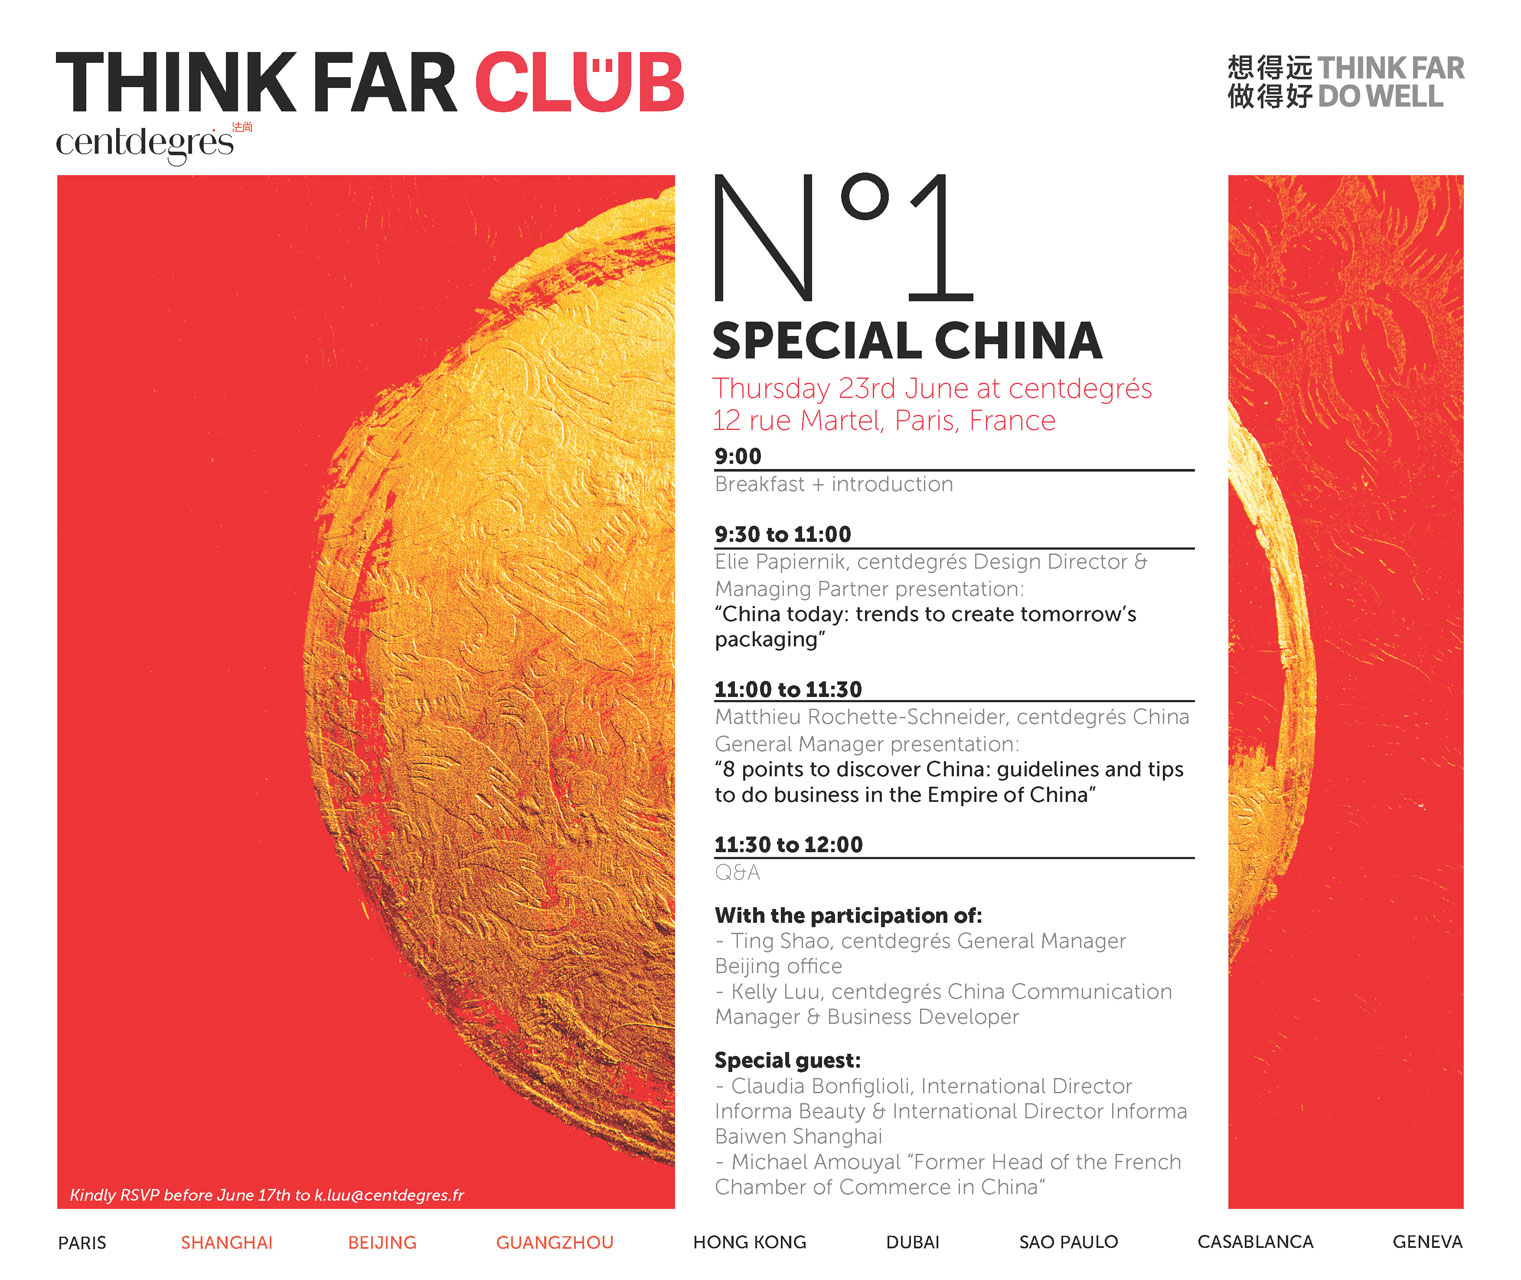 N°1 SPECIAL CHINA